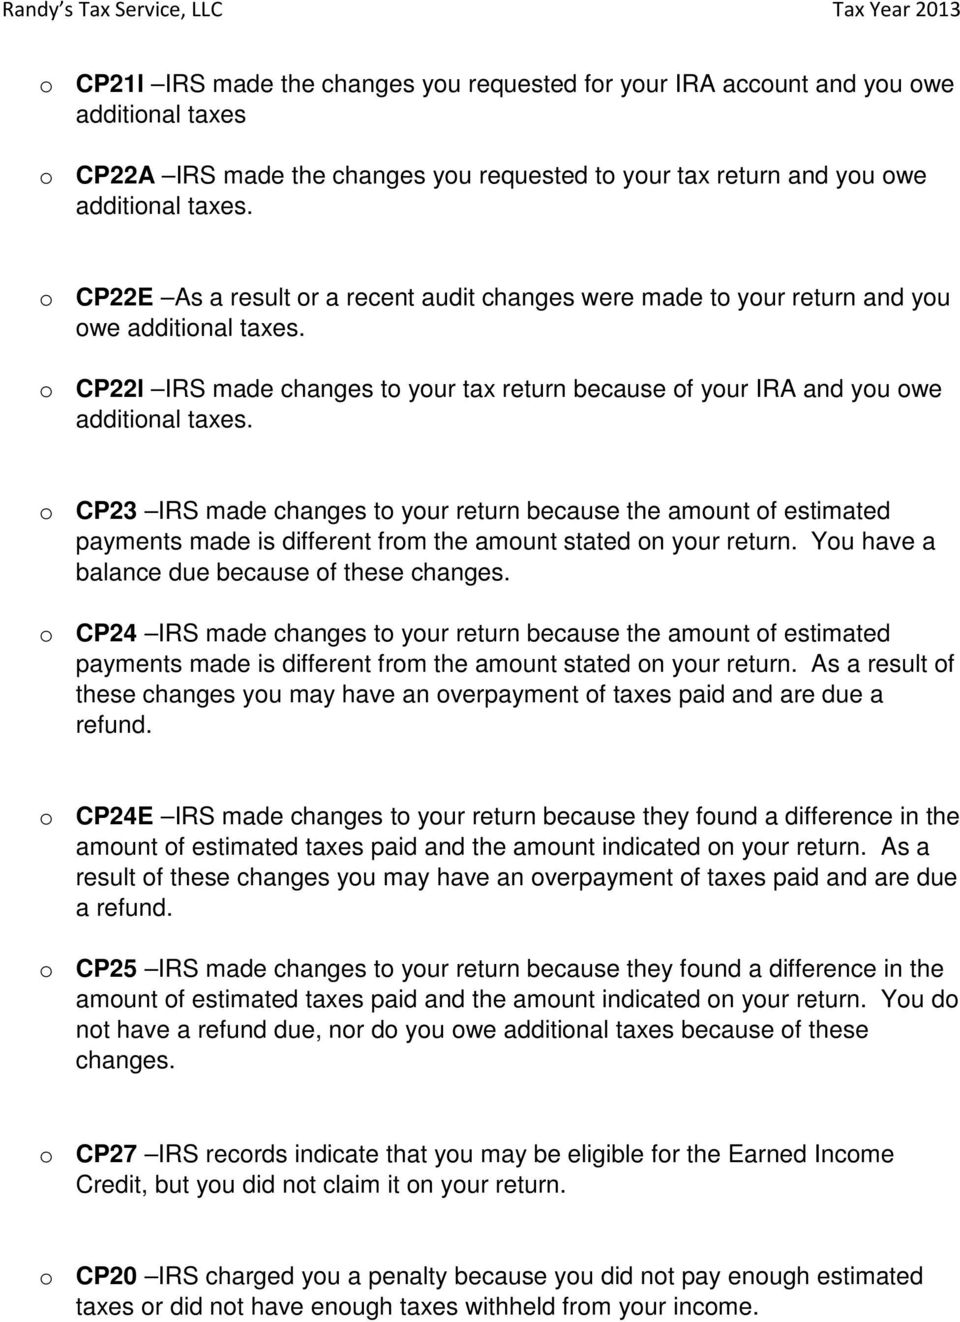 o CP23 IRS made changes to your return because the amount of estimated payments made is different from the amount stated on your return. You have a balance due because of these changes.